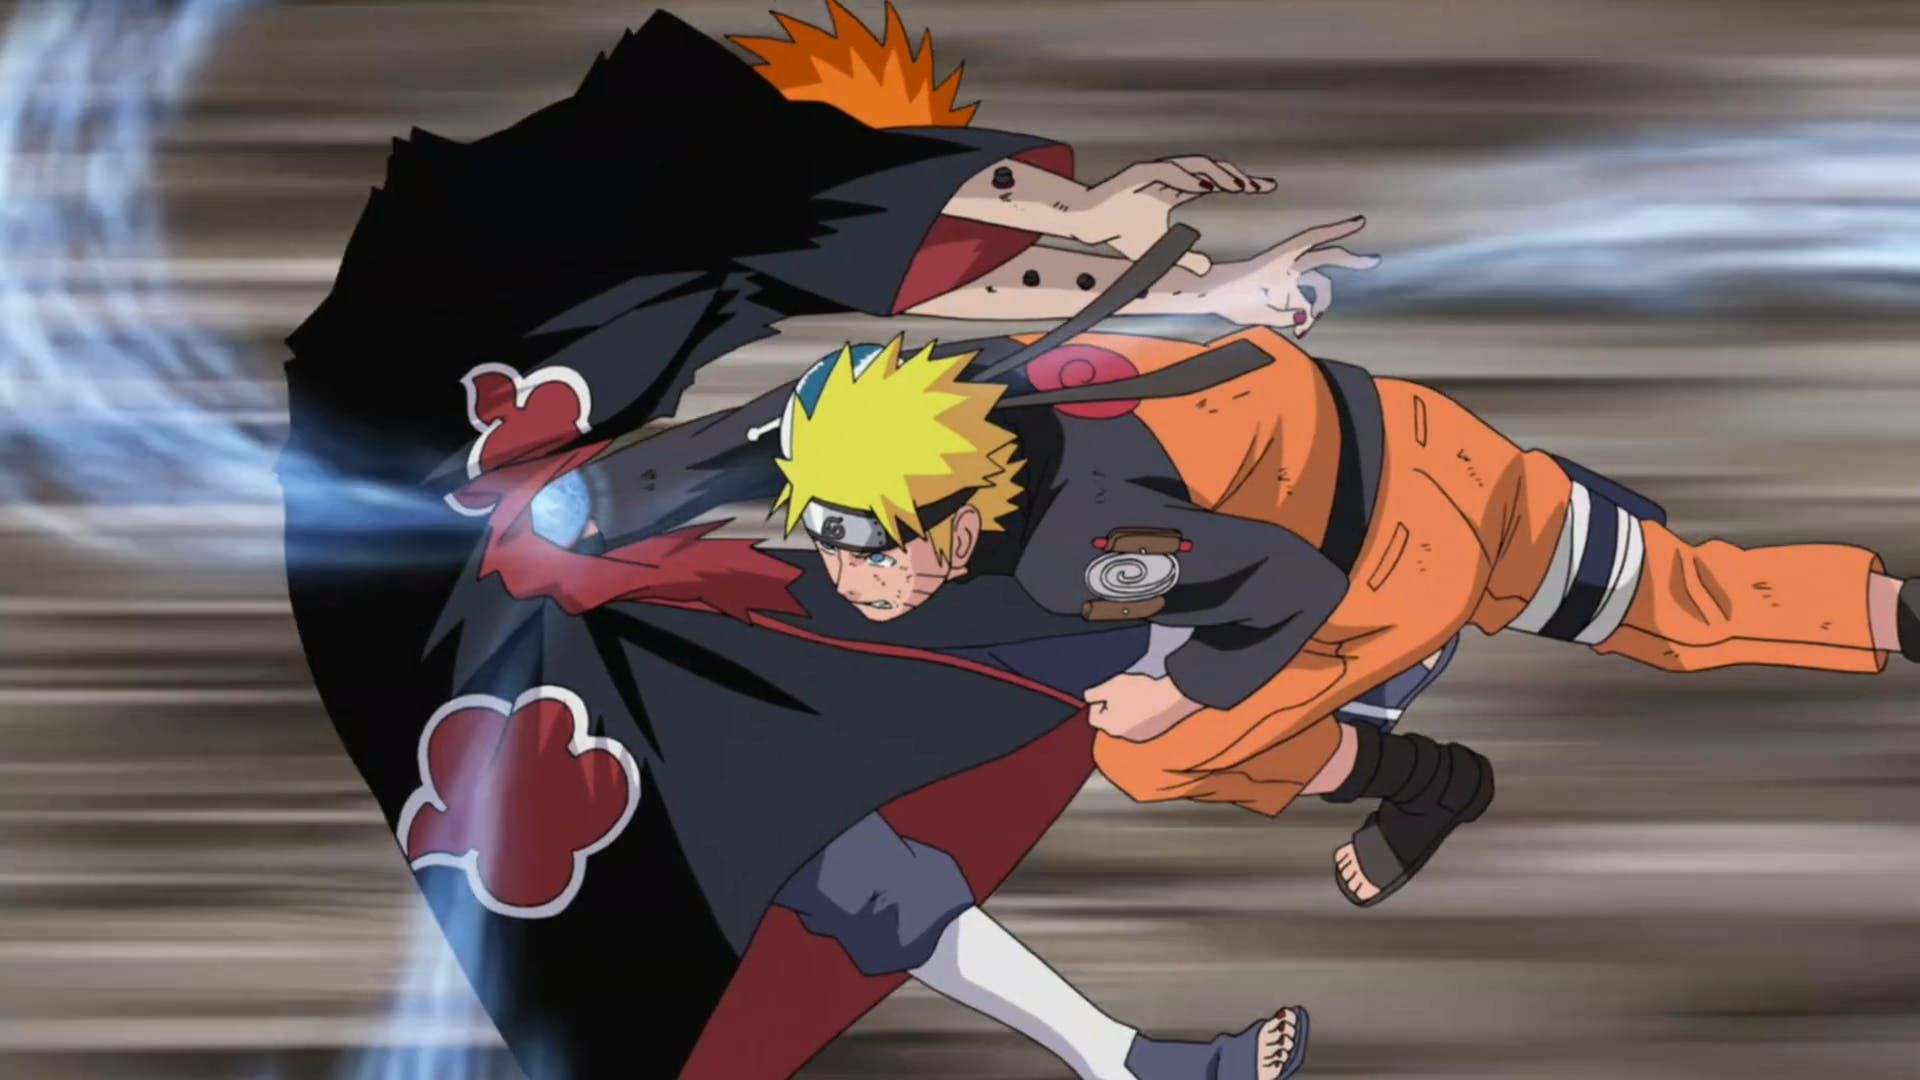 Naruto The 15 Most Powerful Attacks (And 10 That Are